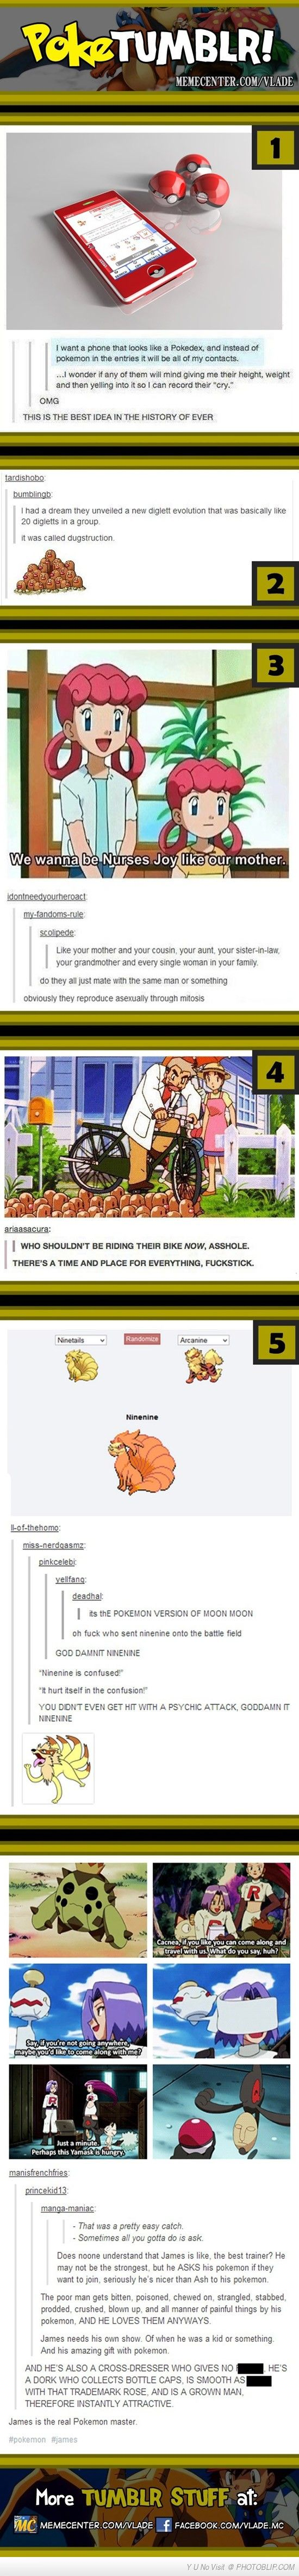 Pokemon On Tumblr Compilation  Lost it at number 3 lmao